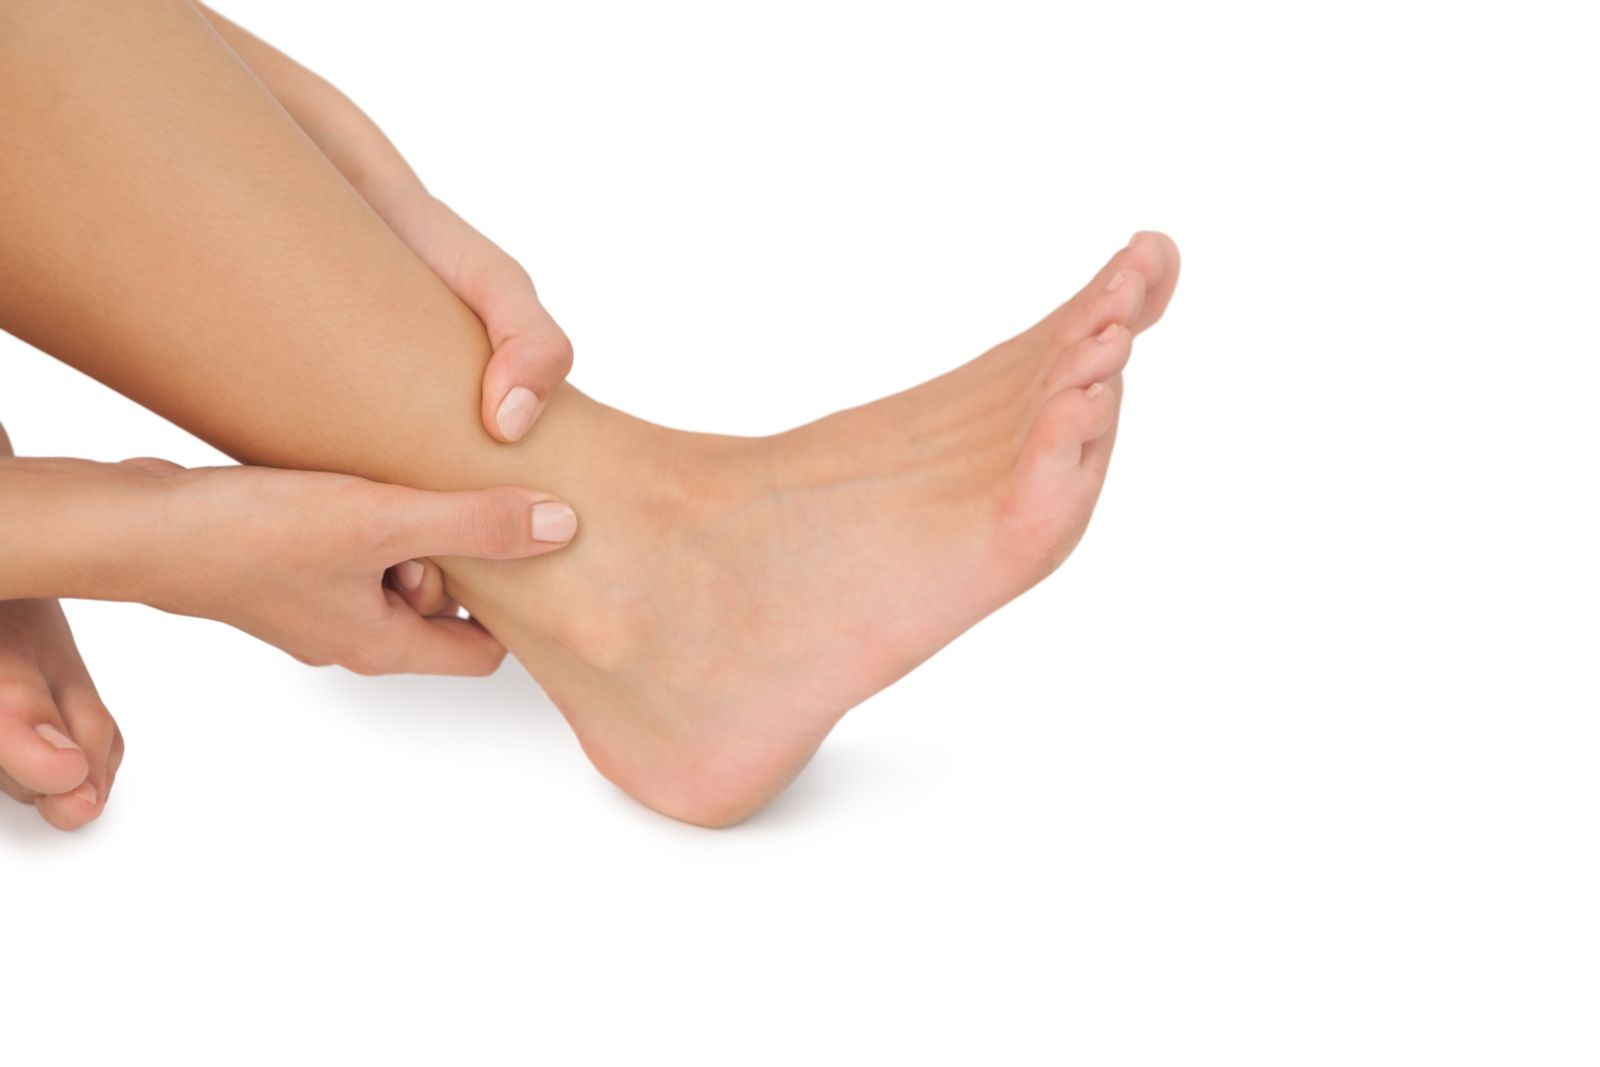 Swollen feet can hurt. We'll help discover the root cause of your problem